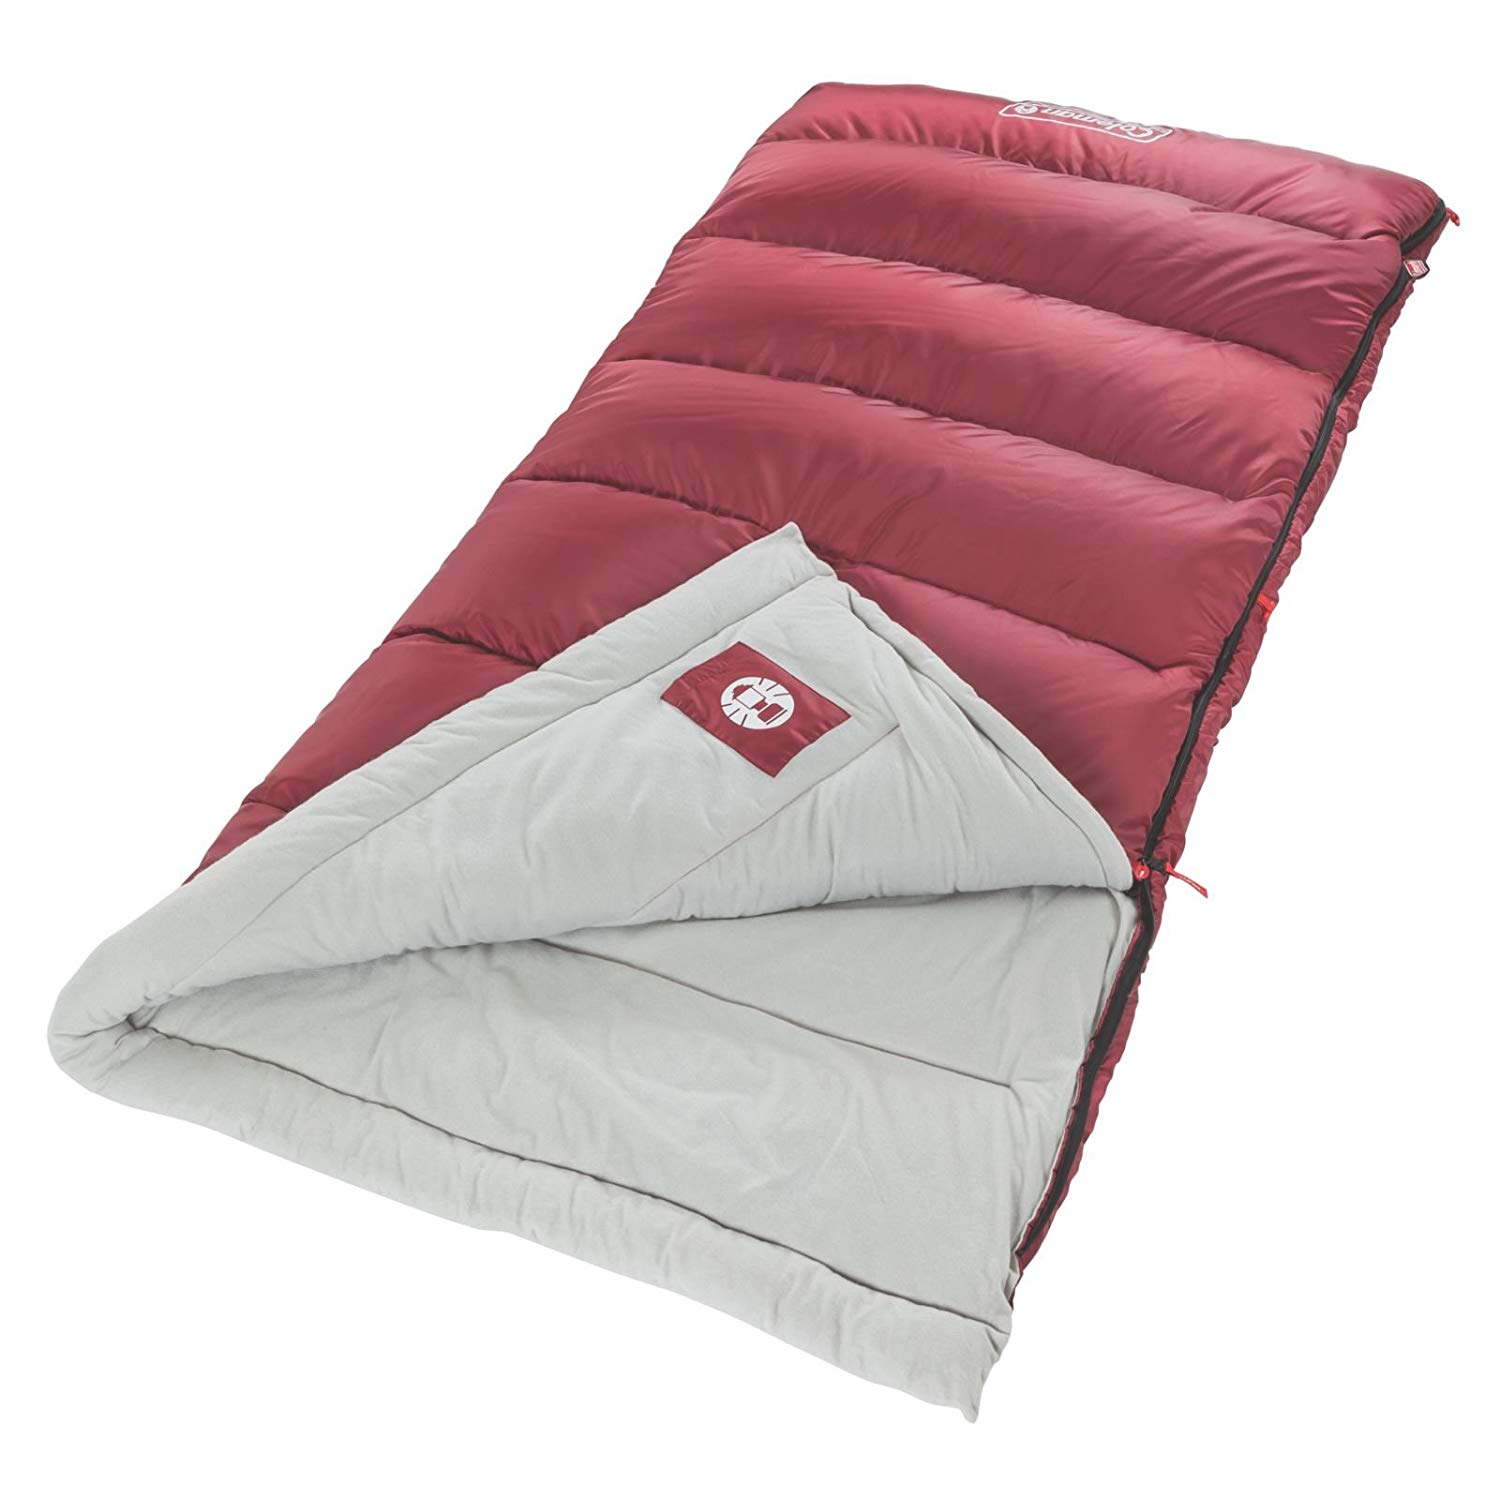 An image related to Coleman Autumn Glen 2000029008 30 Degree Sleeping Bag